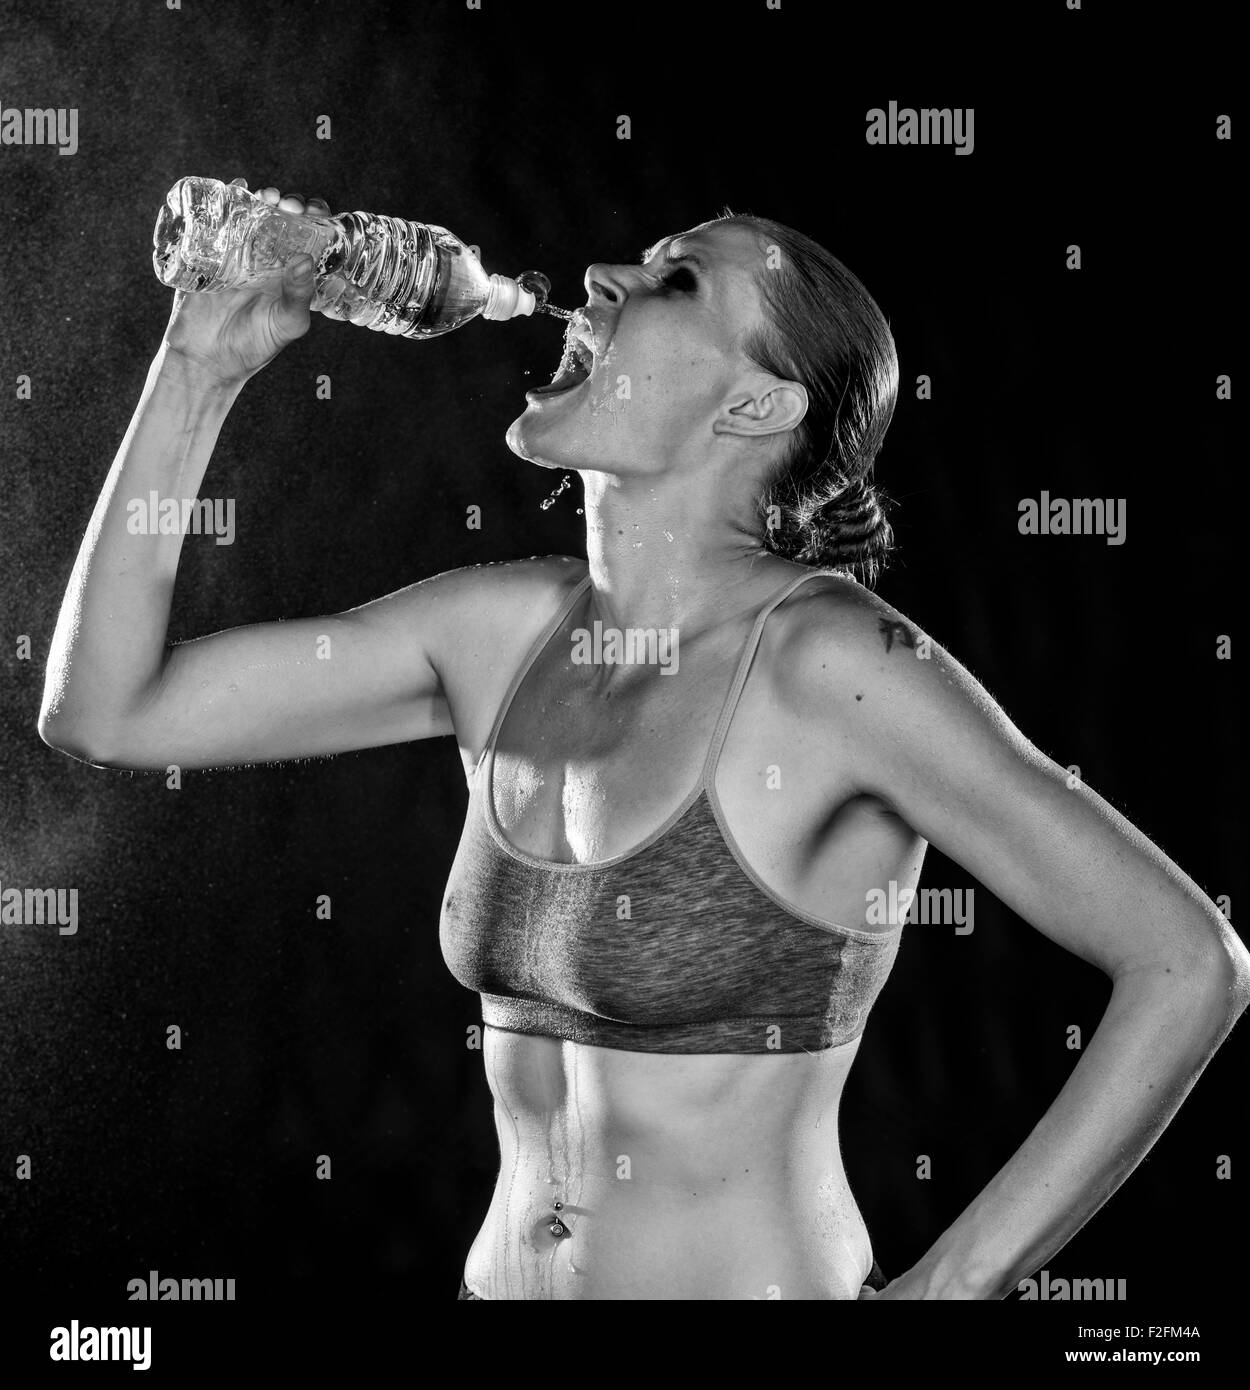 Monochrome of an Athletic Woman Drinking Water - Stock Image